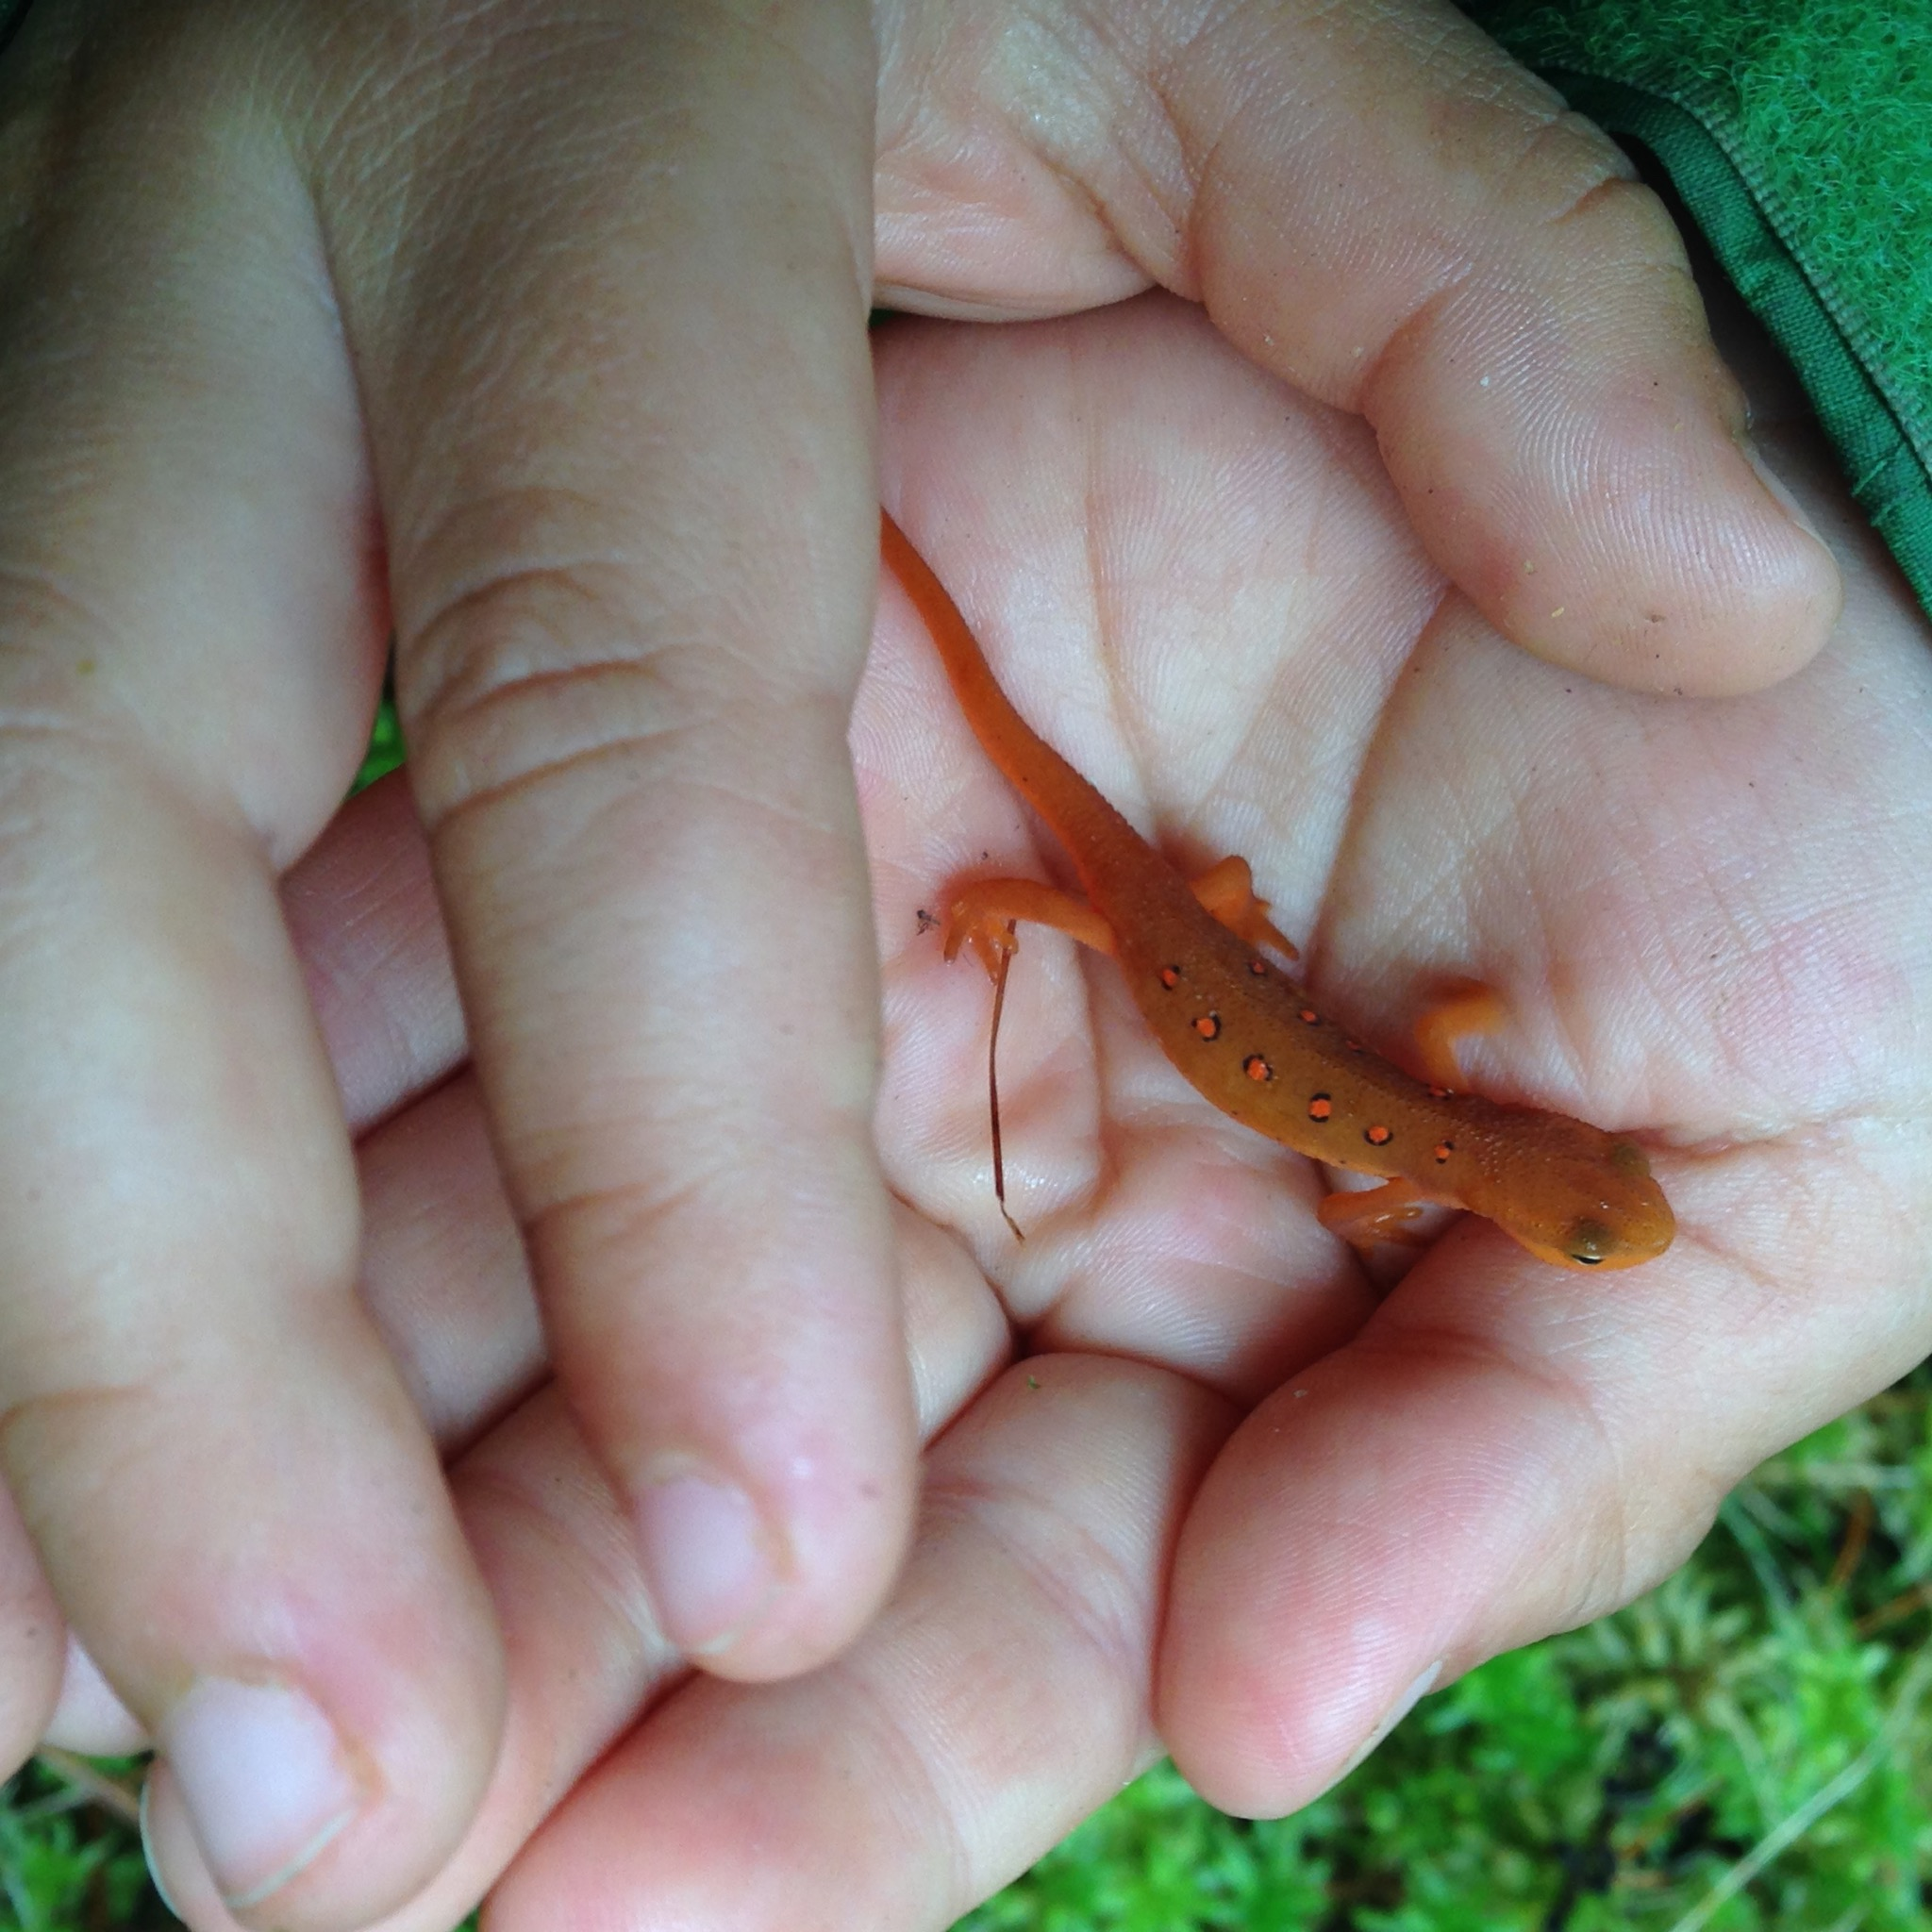 Red eft, the terrestrial juvenile stage of the Eastern newt. We must have seen 30 or 40 of these guys during our hike! At a pond, S+K found 6 of the olive colored aquatic adults.